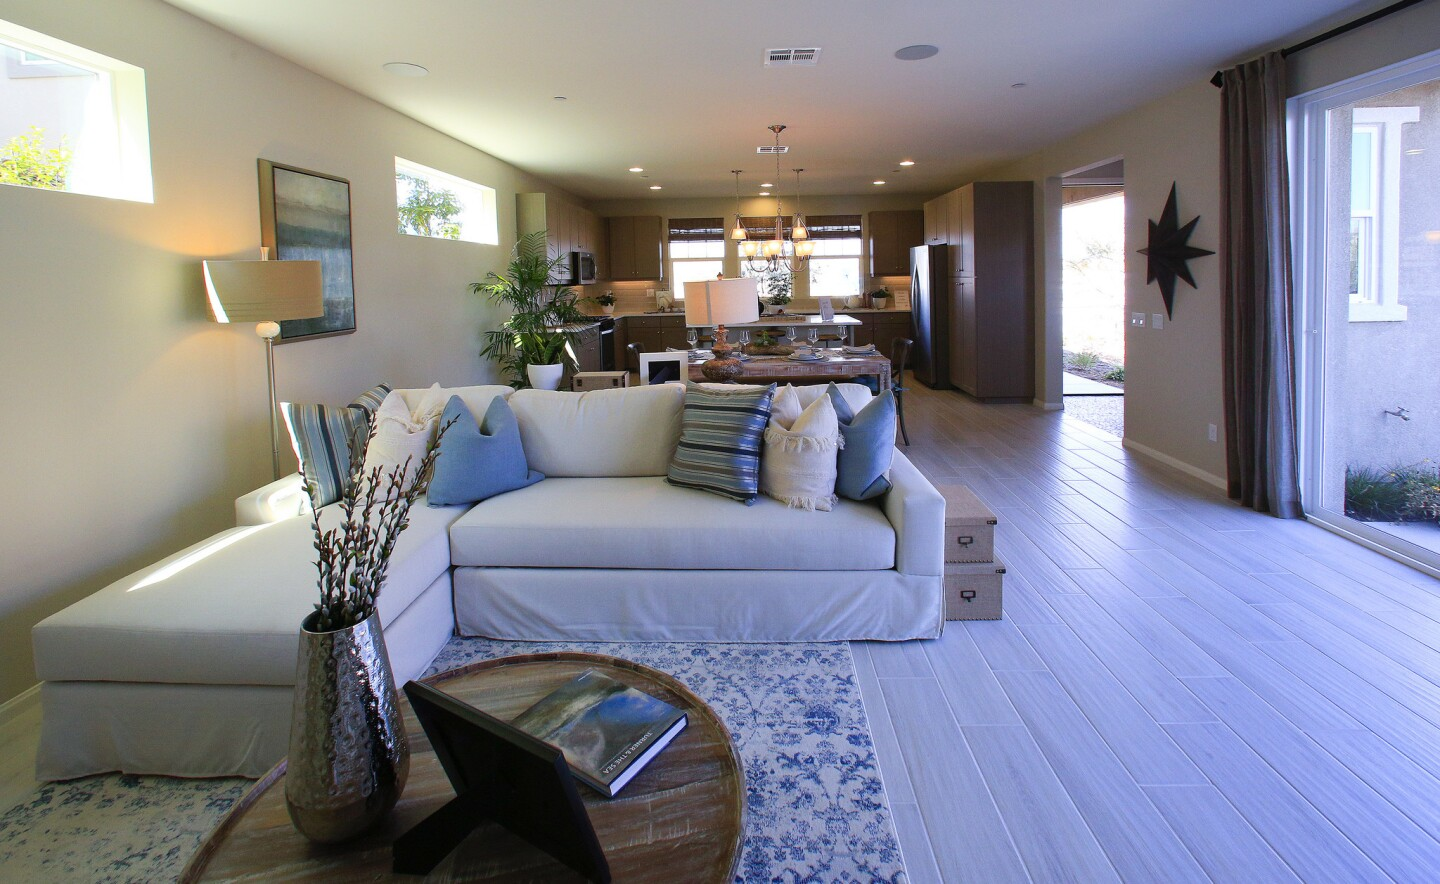 Several new villages of the Otay Ranch development in Chula Vista have recently opened.